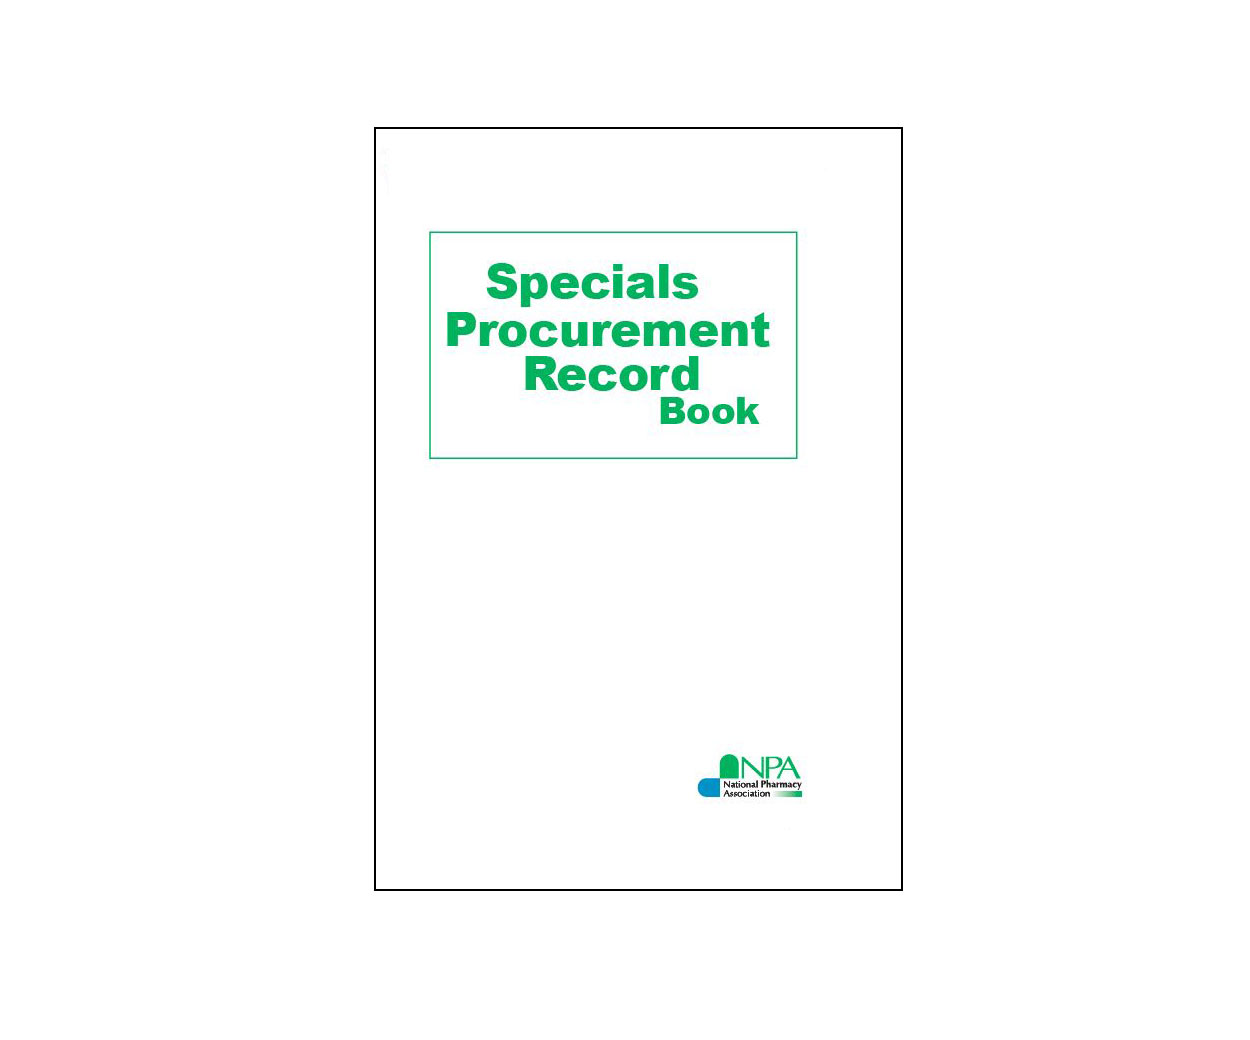 Specials Procurement Record Book